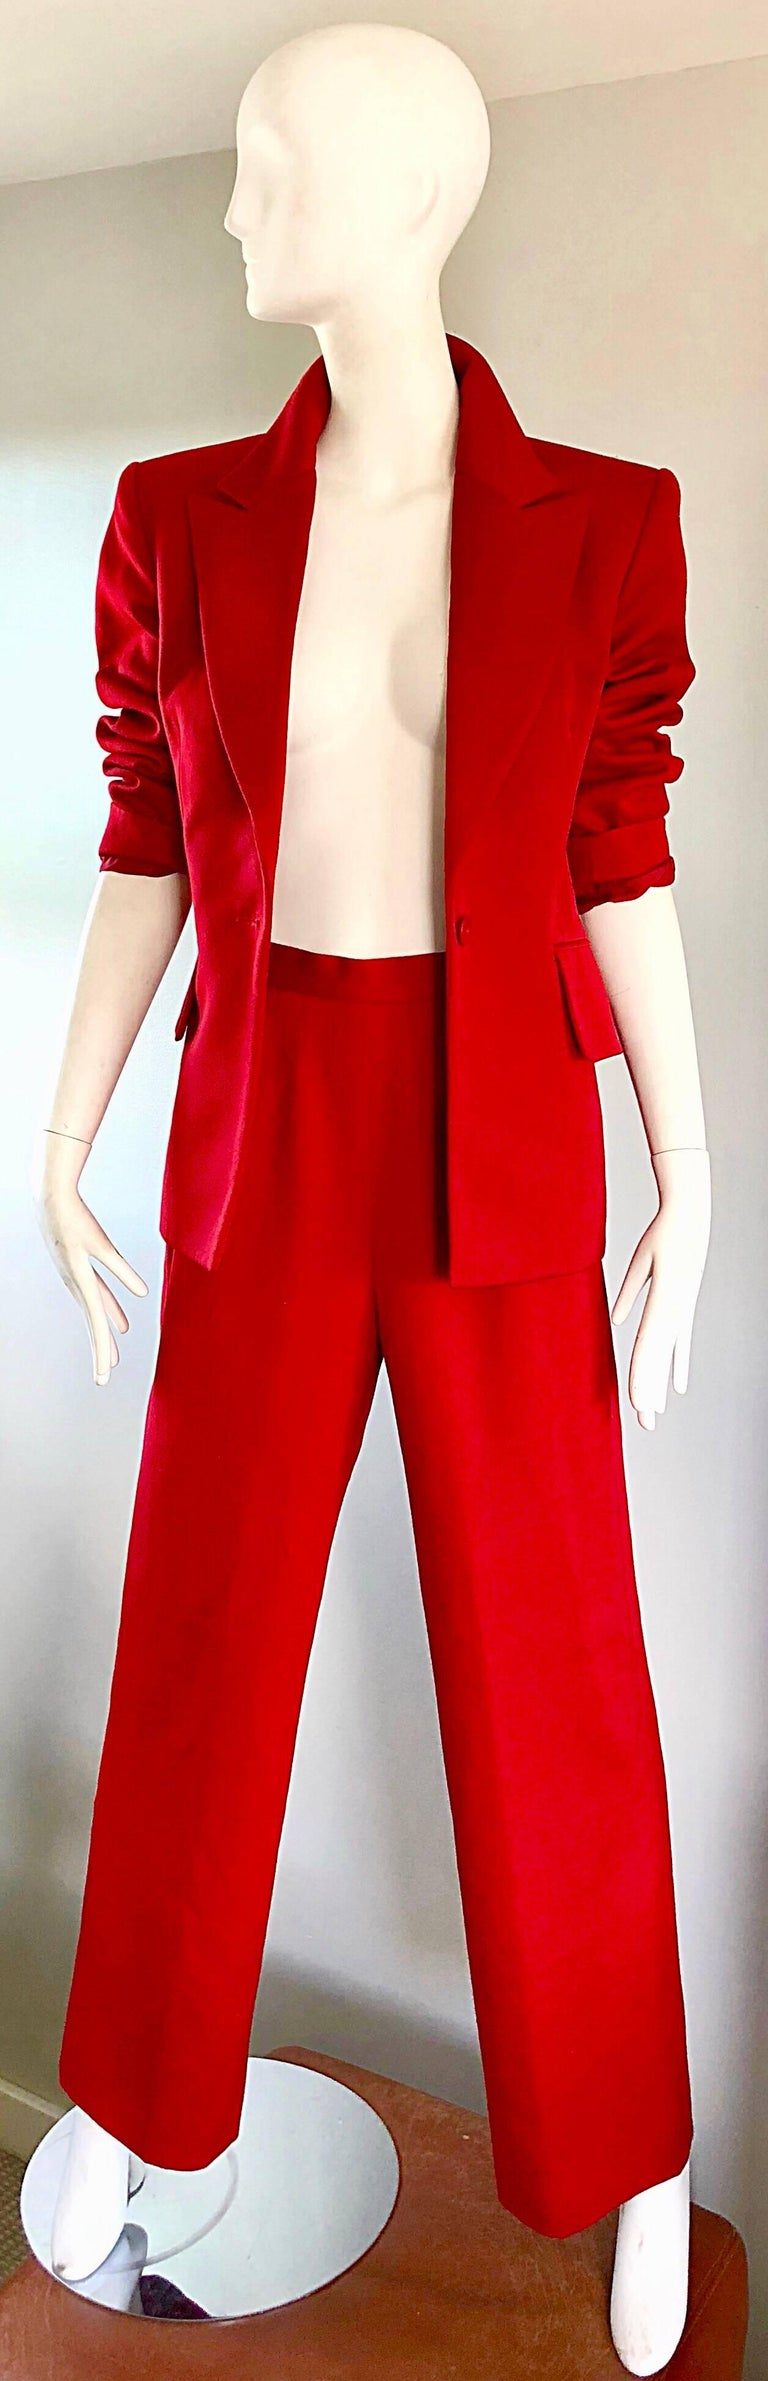 Isaac Mizrahi Vintage 1990s Lipstick Red Wide Leg Wool Le Smoking 90s Pants Suit 5